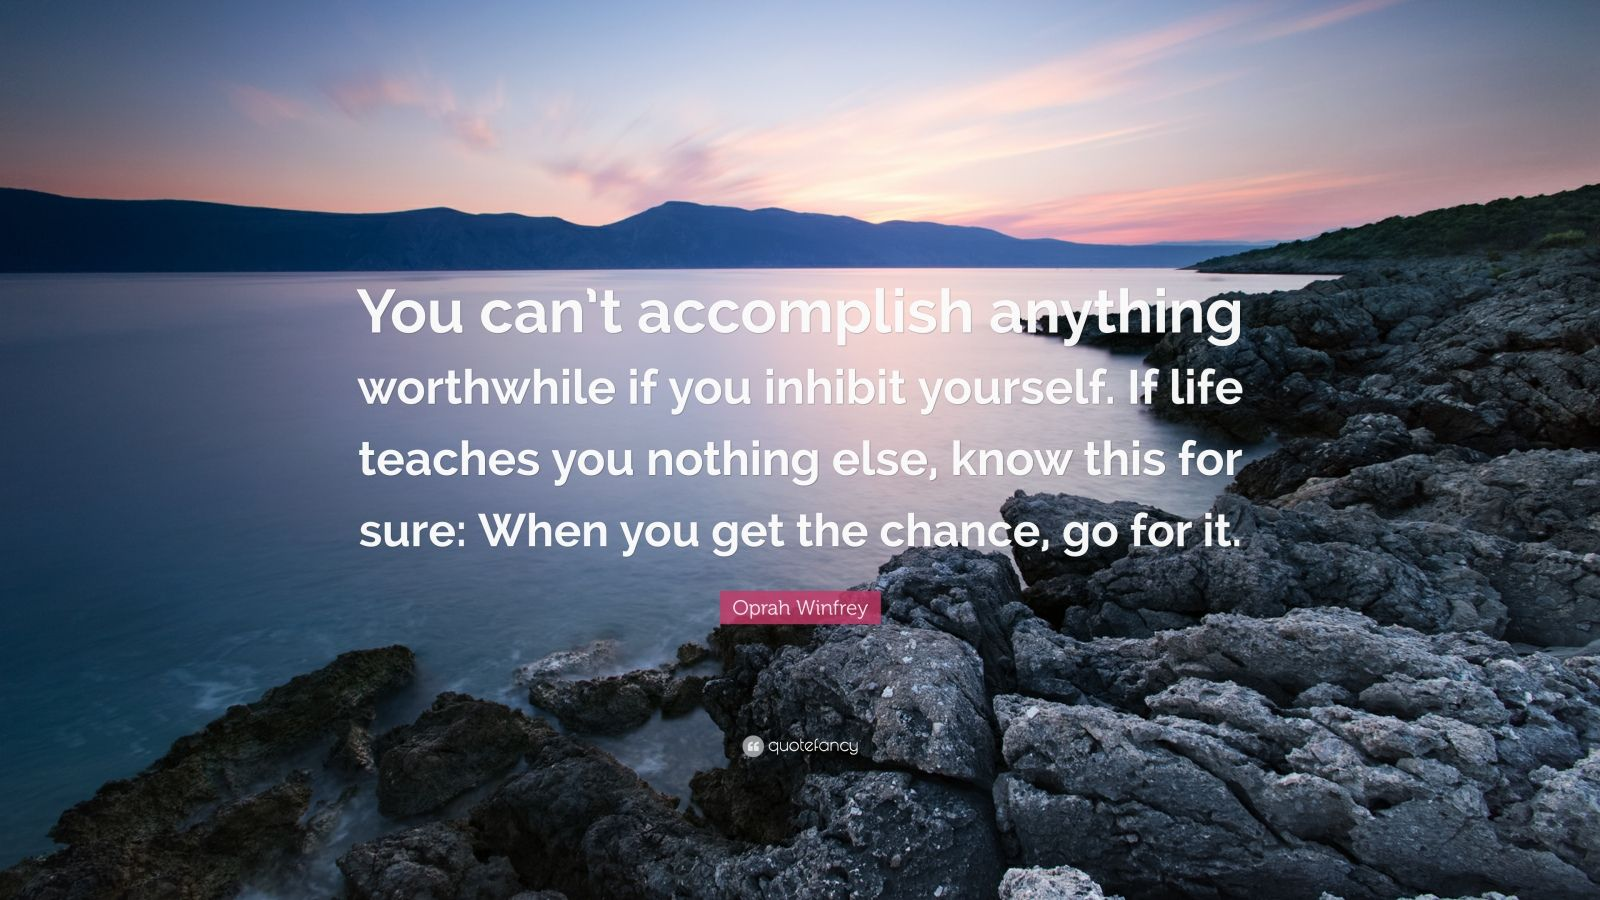 """Oprah Winfrey Quote: """"You can't accomplish anything worthwhile if you inhibit yourself. If life teaches you nothing else, know this for sure: When you get the chance, go for it."""""""